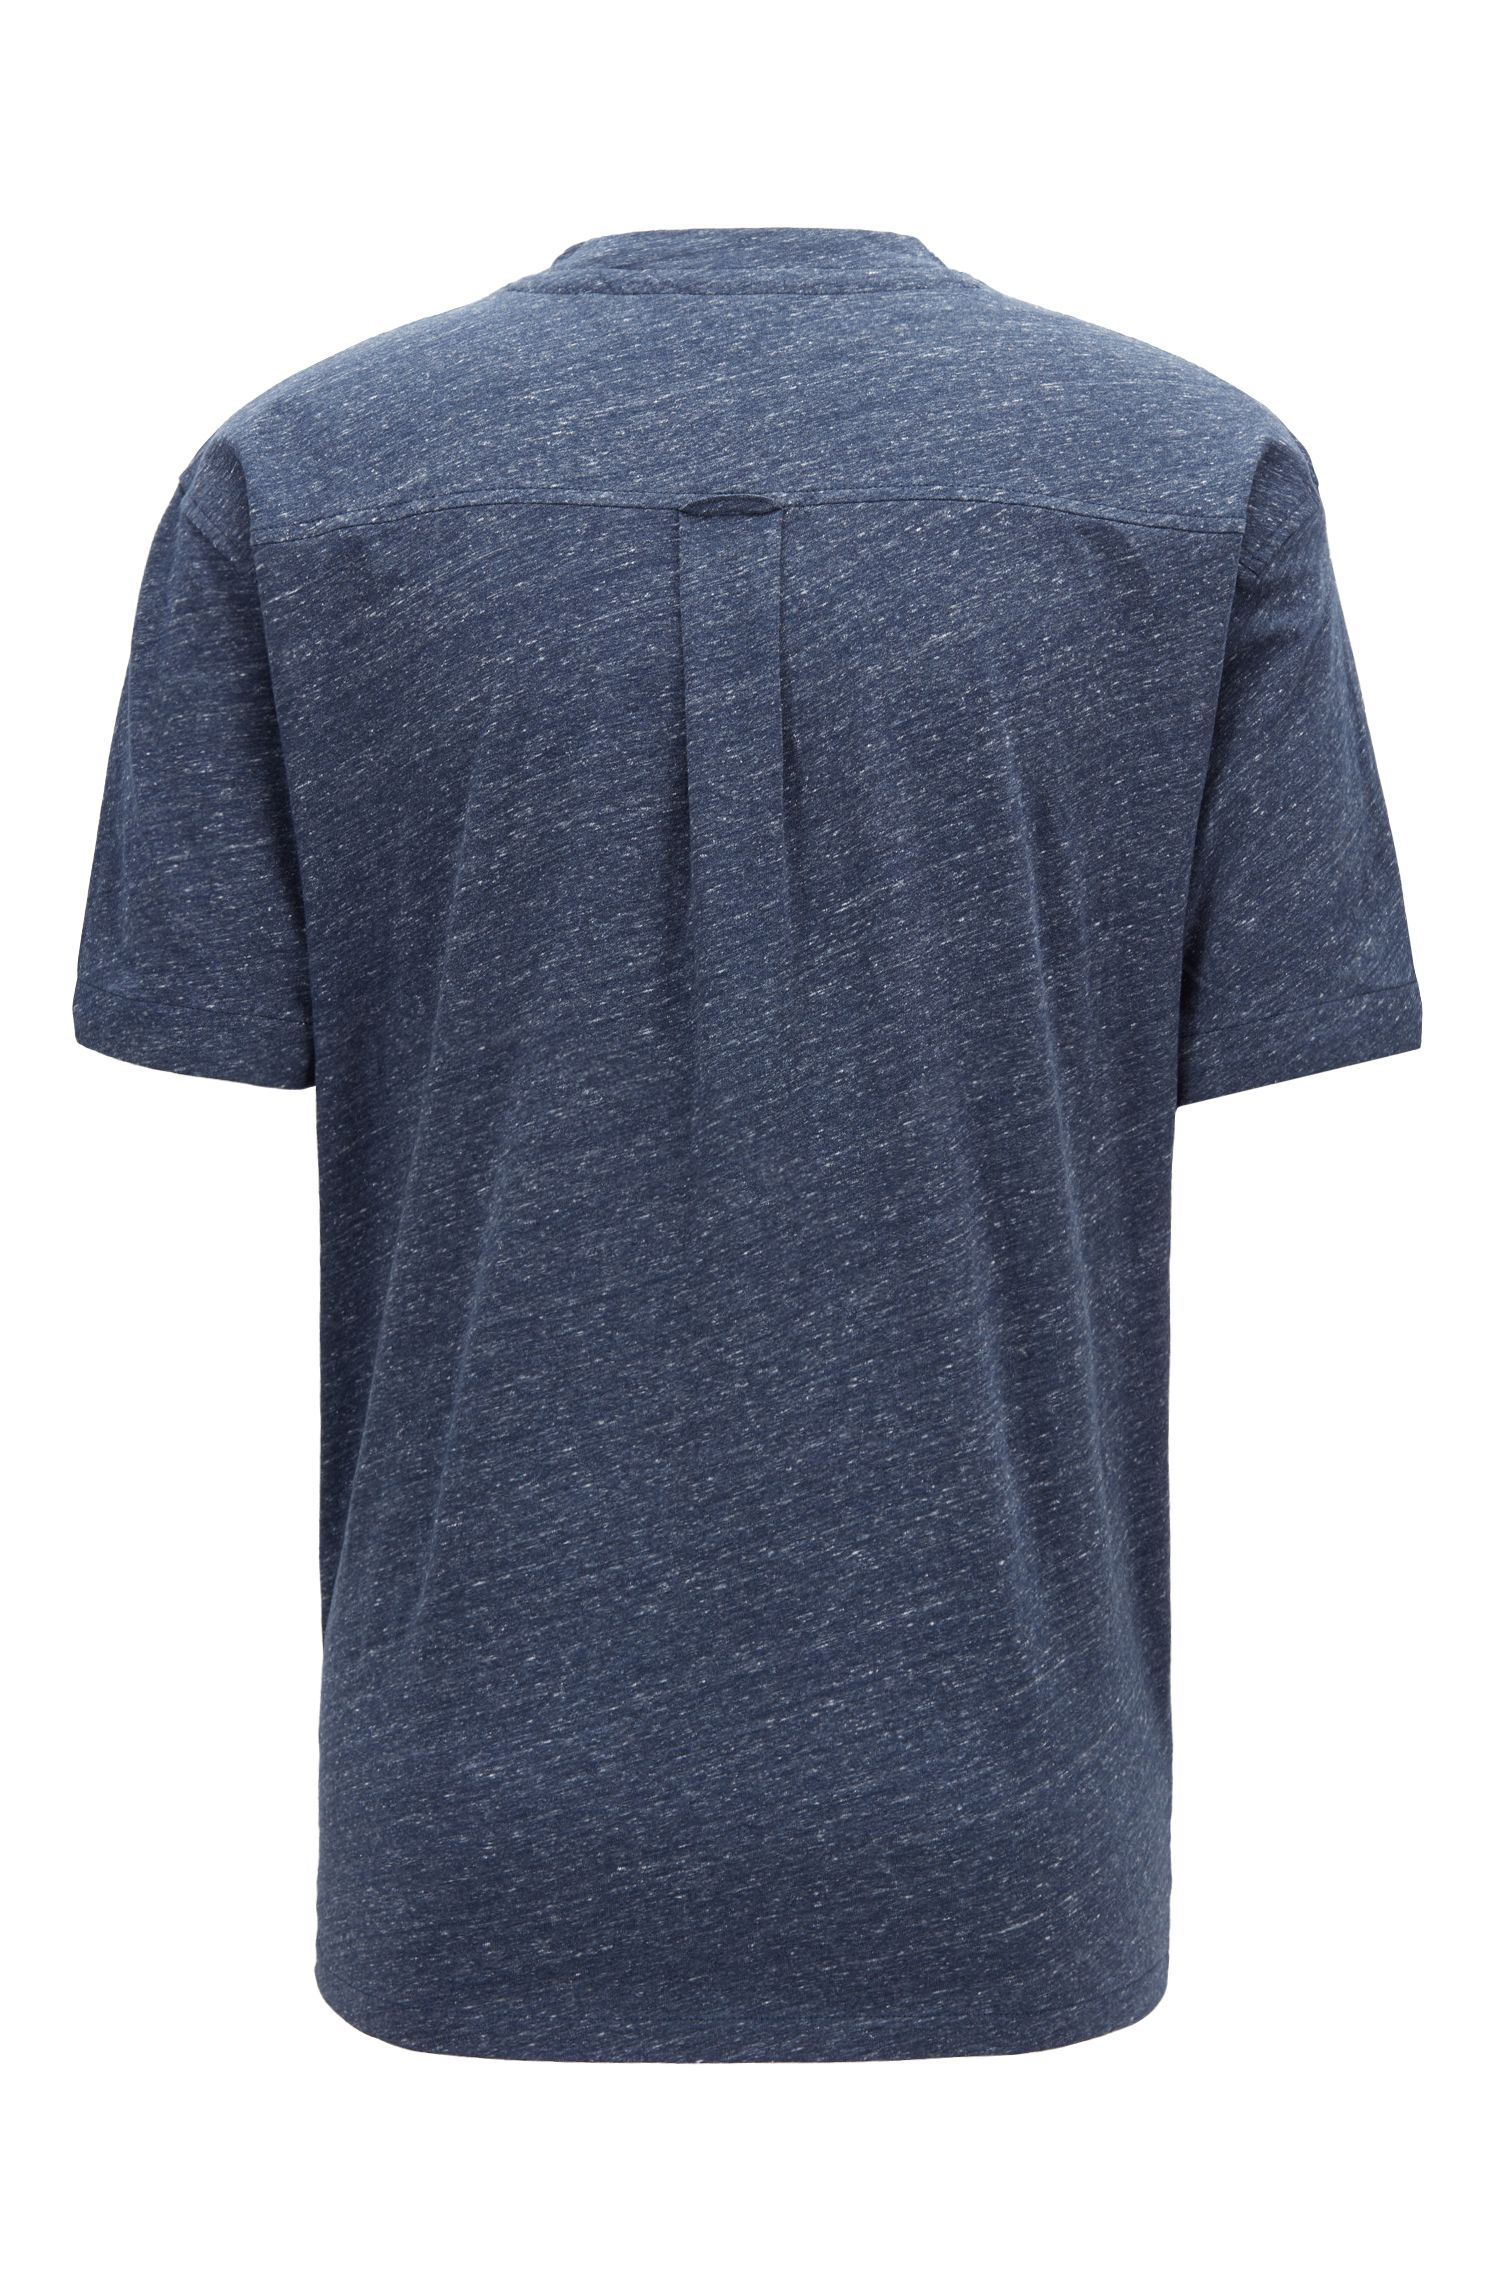 Relaxed-fit T-shirt with hybrid details